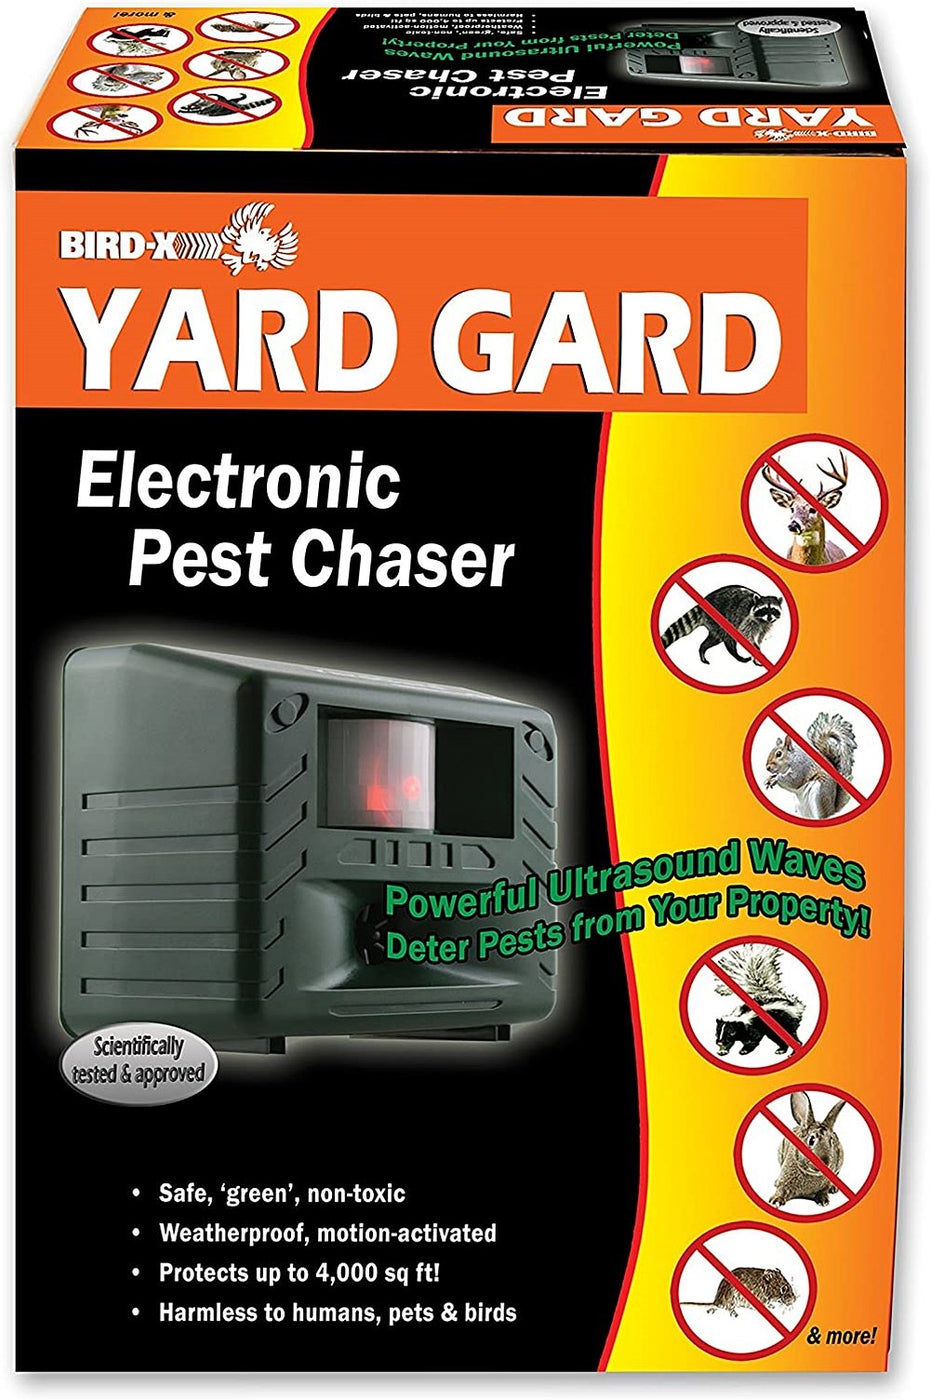 Bird-X - YardGard - #1 Ultrasonic Animal Repeller For Deer, Racoons, Skunks, Rabbits & Small Animals